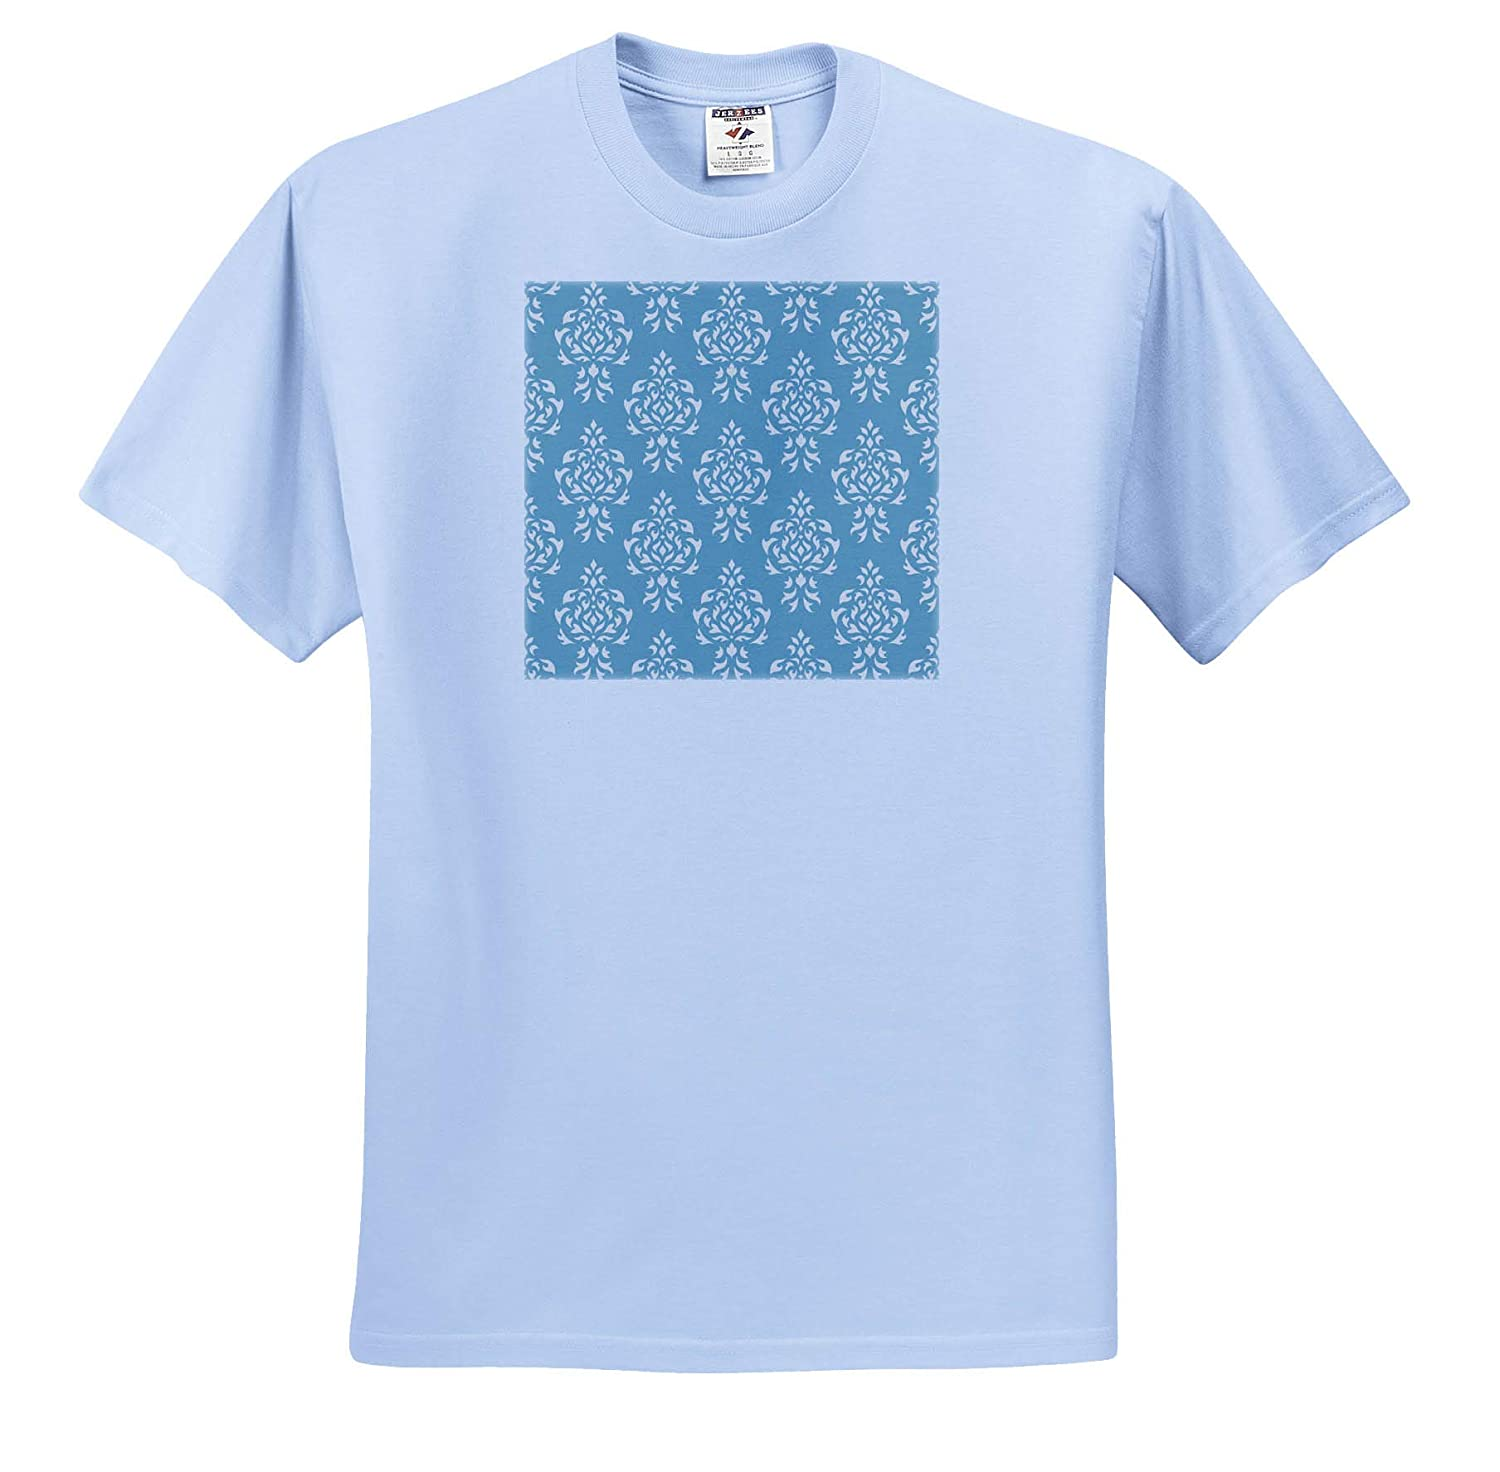 T-Shirts Damask Crest Pattern in Cream on Blue 3dRose Natalie Paskell Damask Crest Pattern